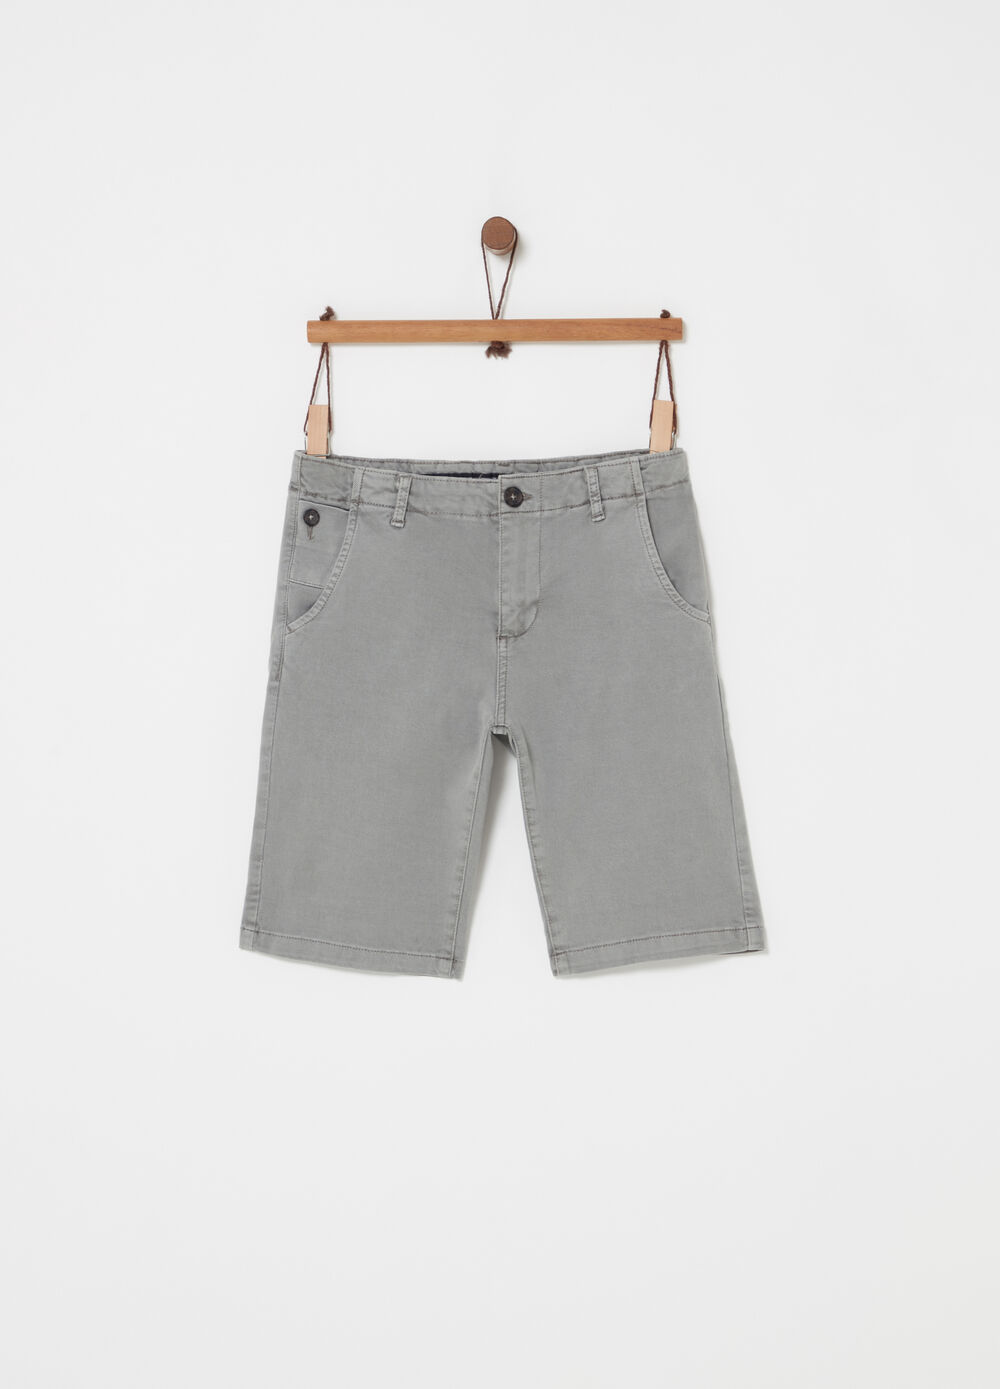 Stretch chino Bermuda shorts with pockets